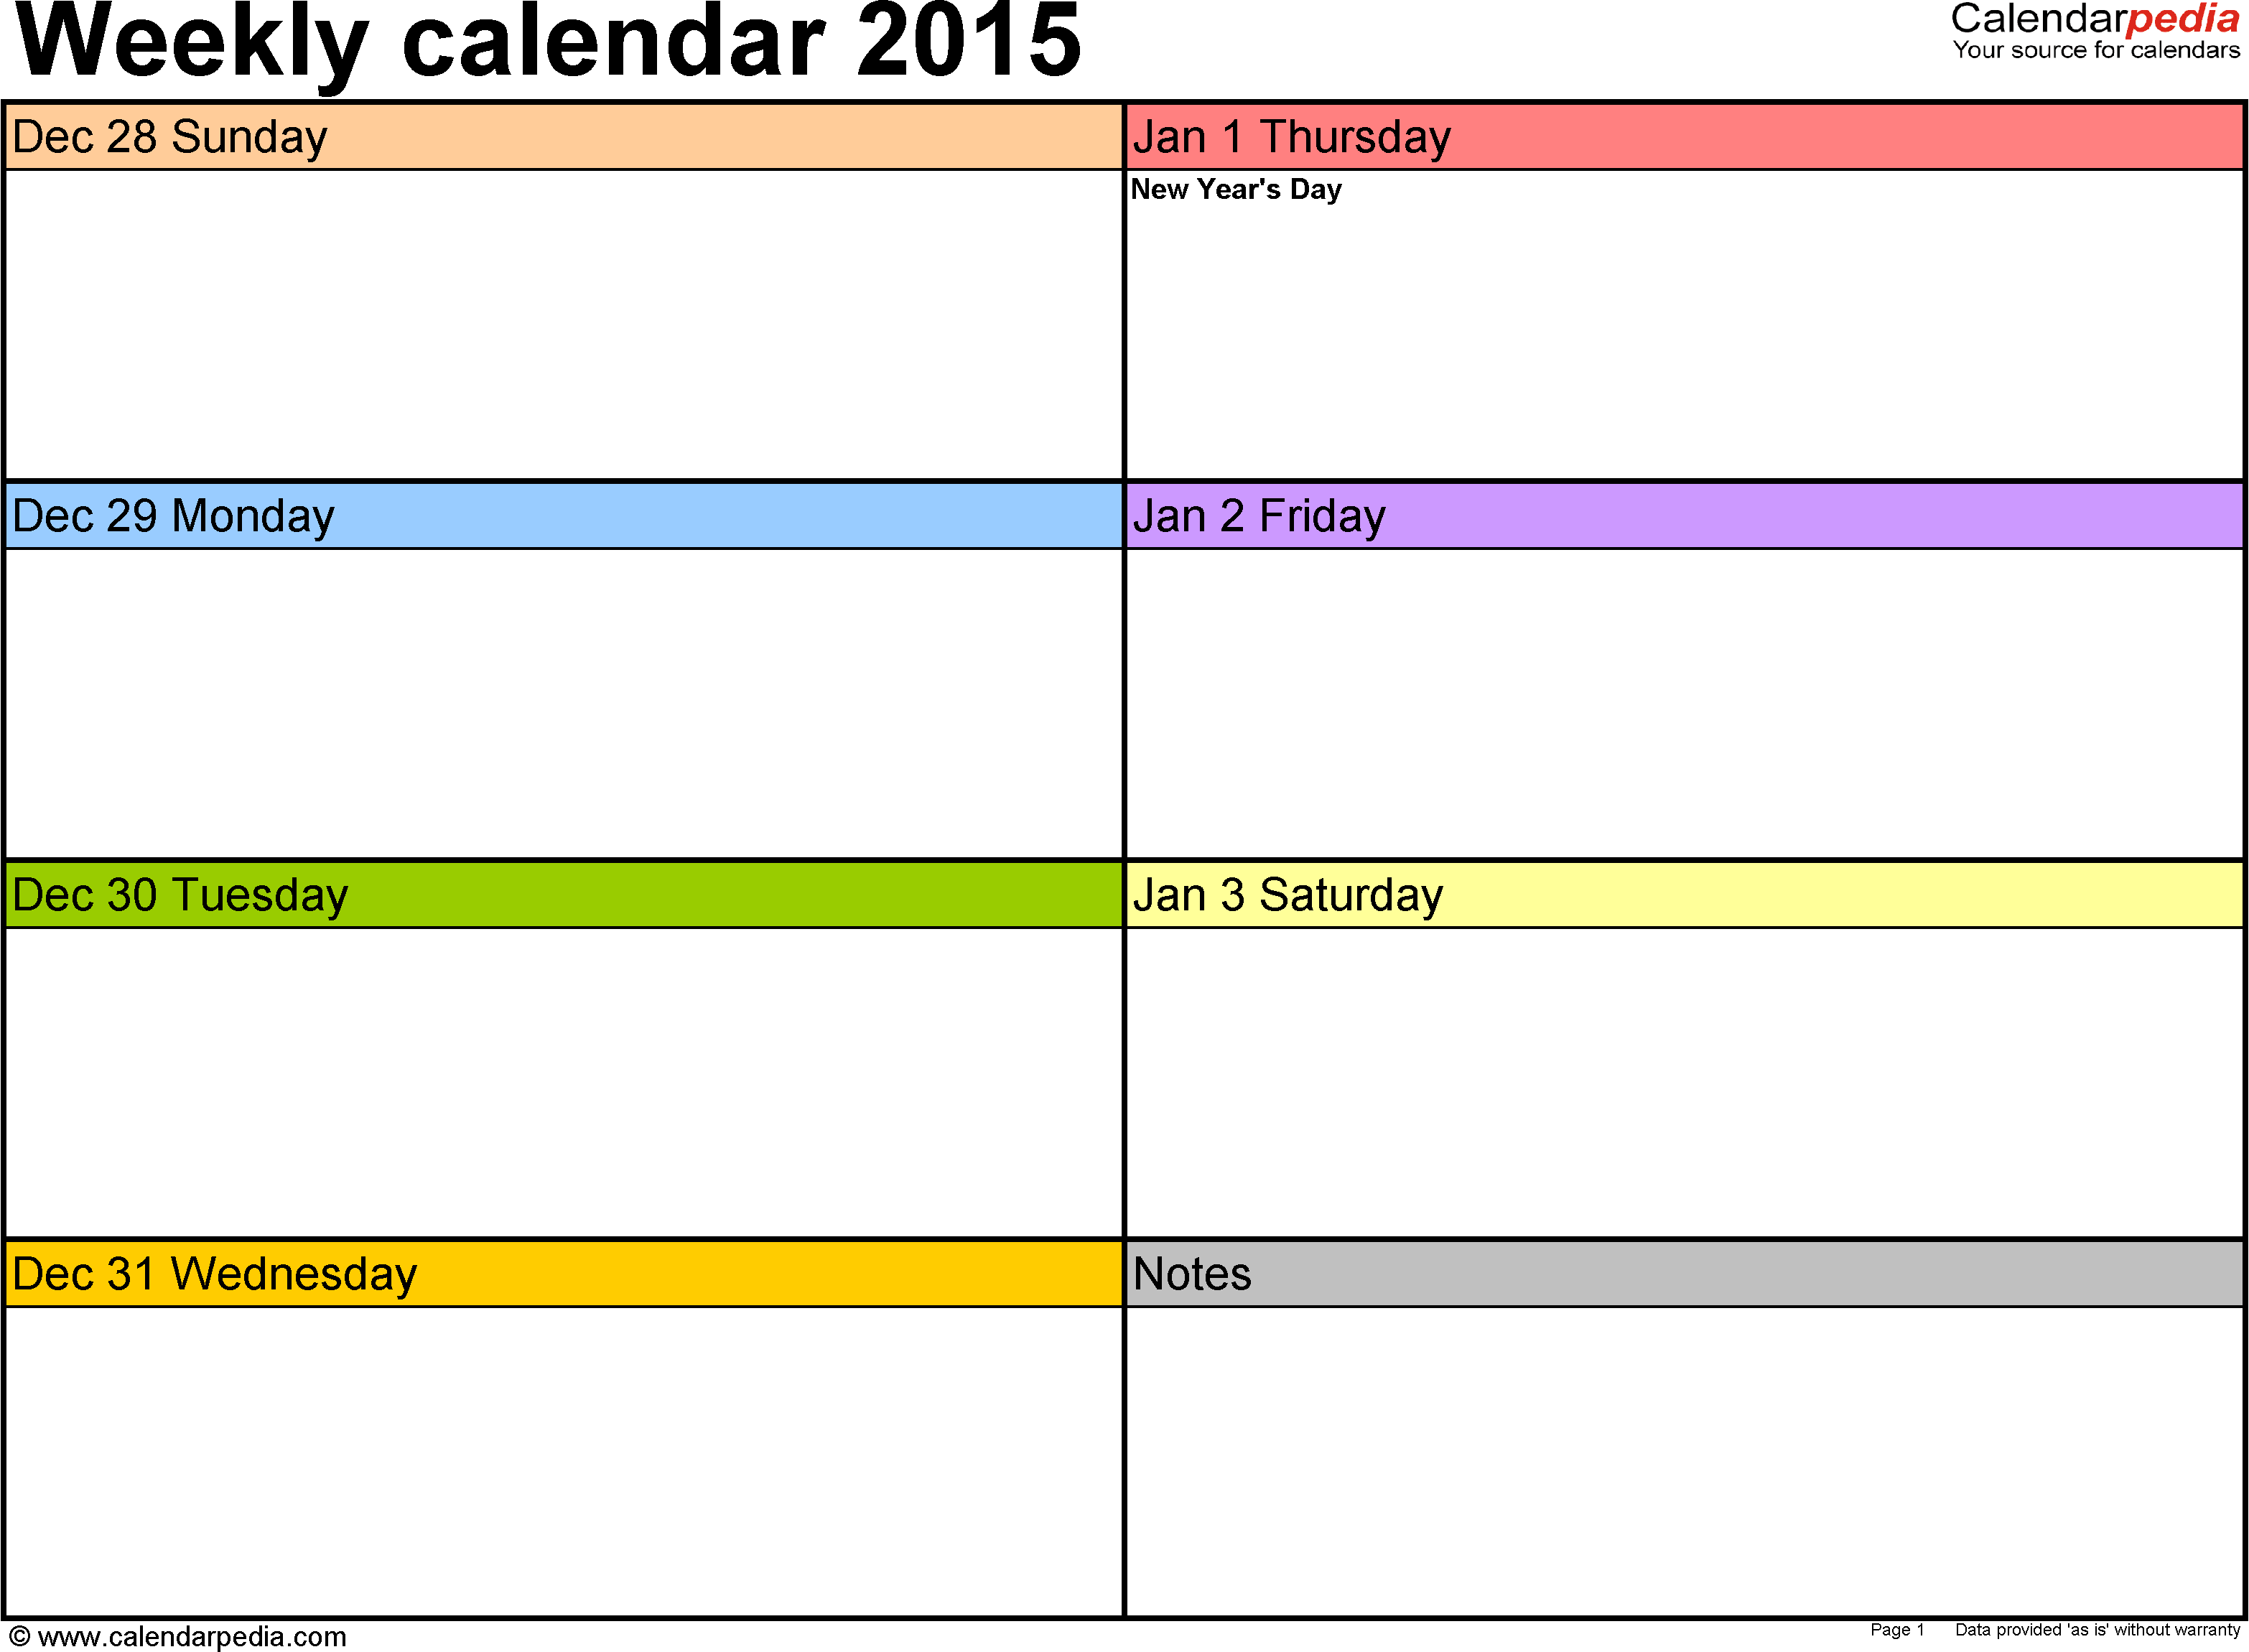 Superior Printable Weekly Calendars. Printable Weekly Calendar Template 2015 Regarding Free Daily Calendar Template With Times